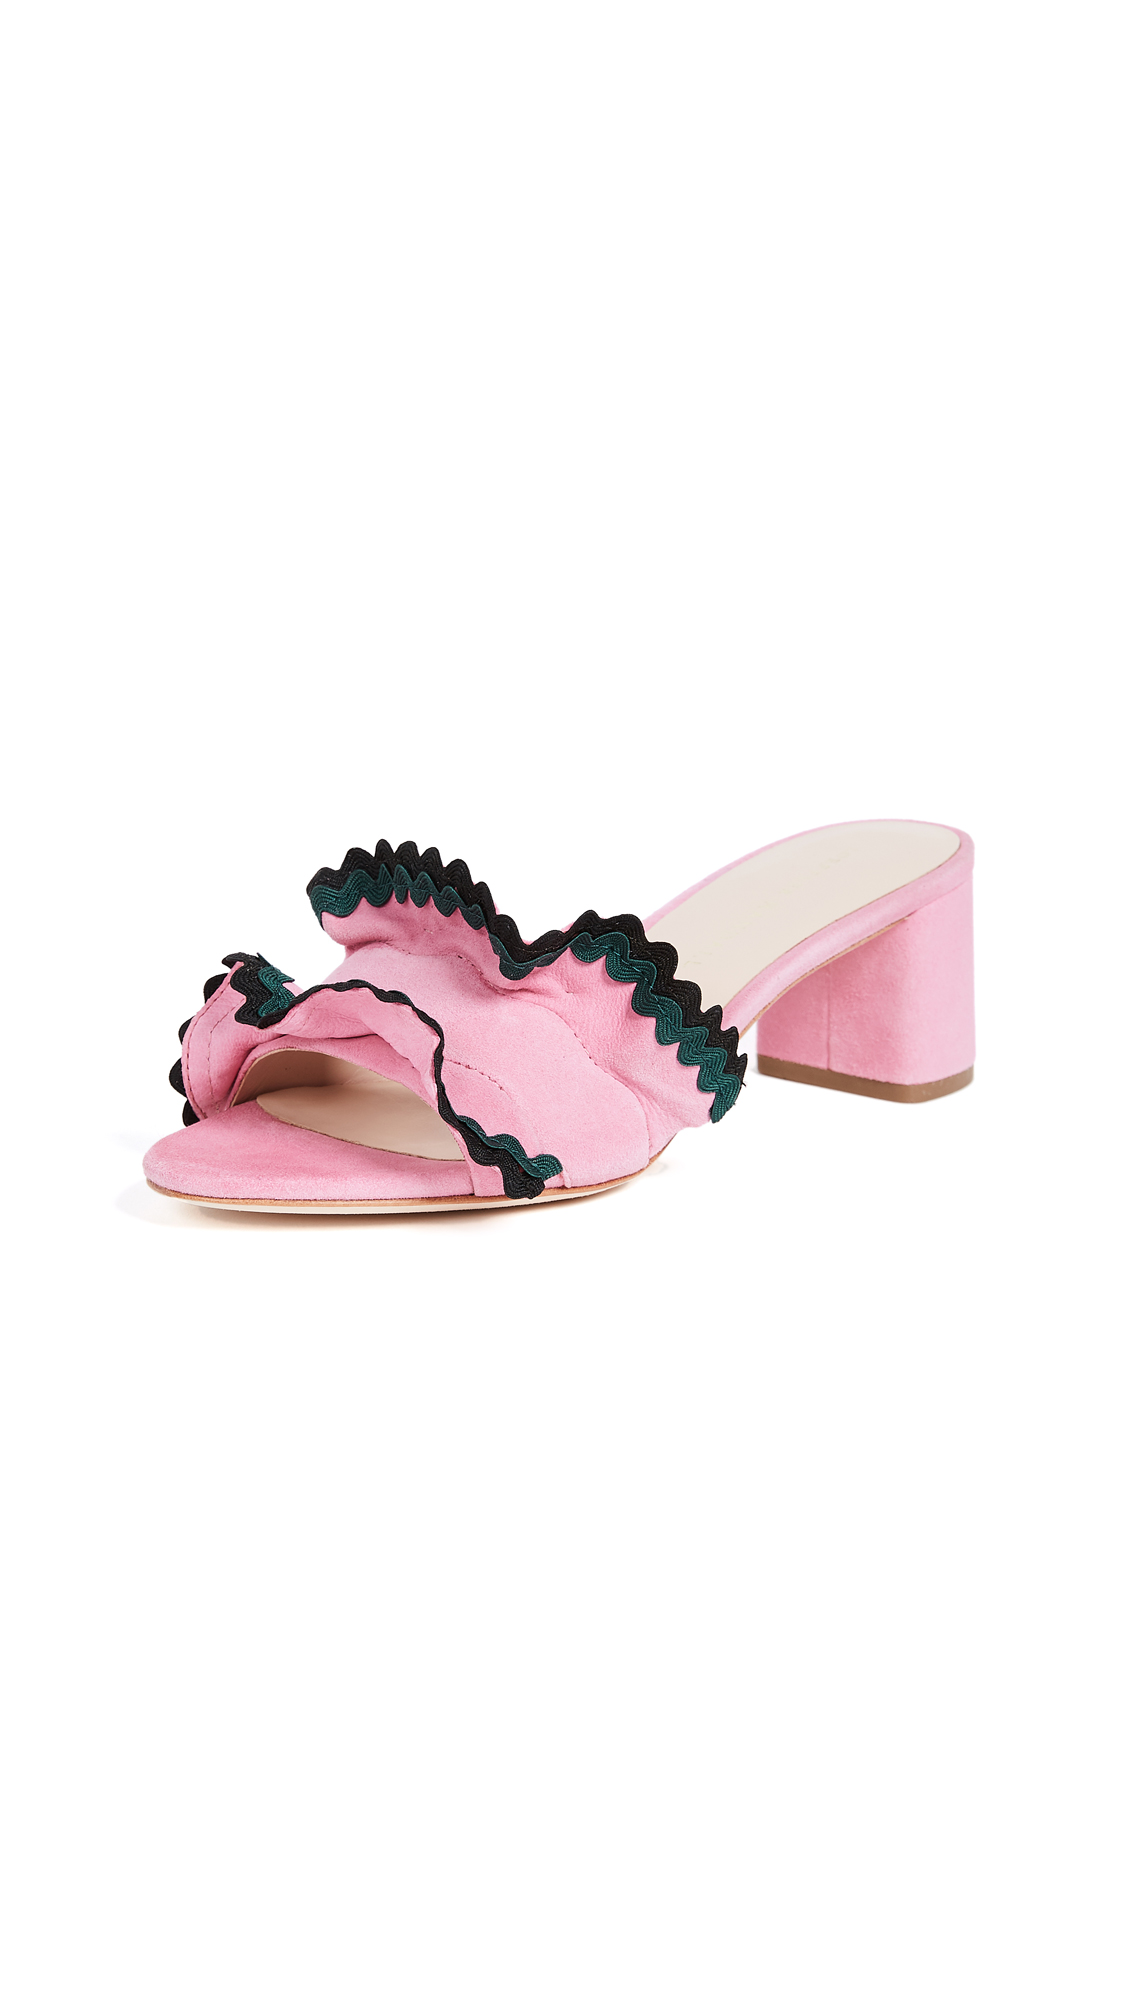 Loeffler Randall Vera City Slide Sandals - Peony/Multi